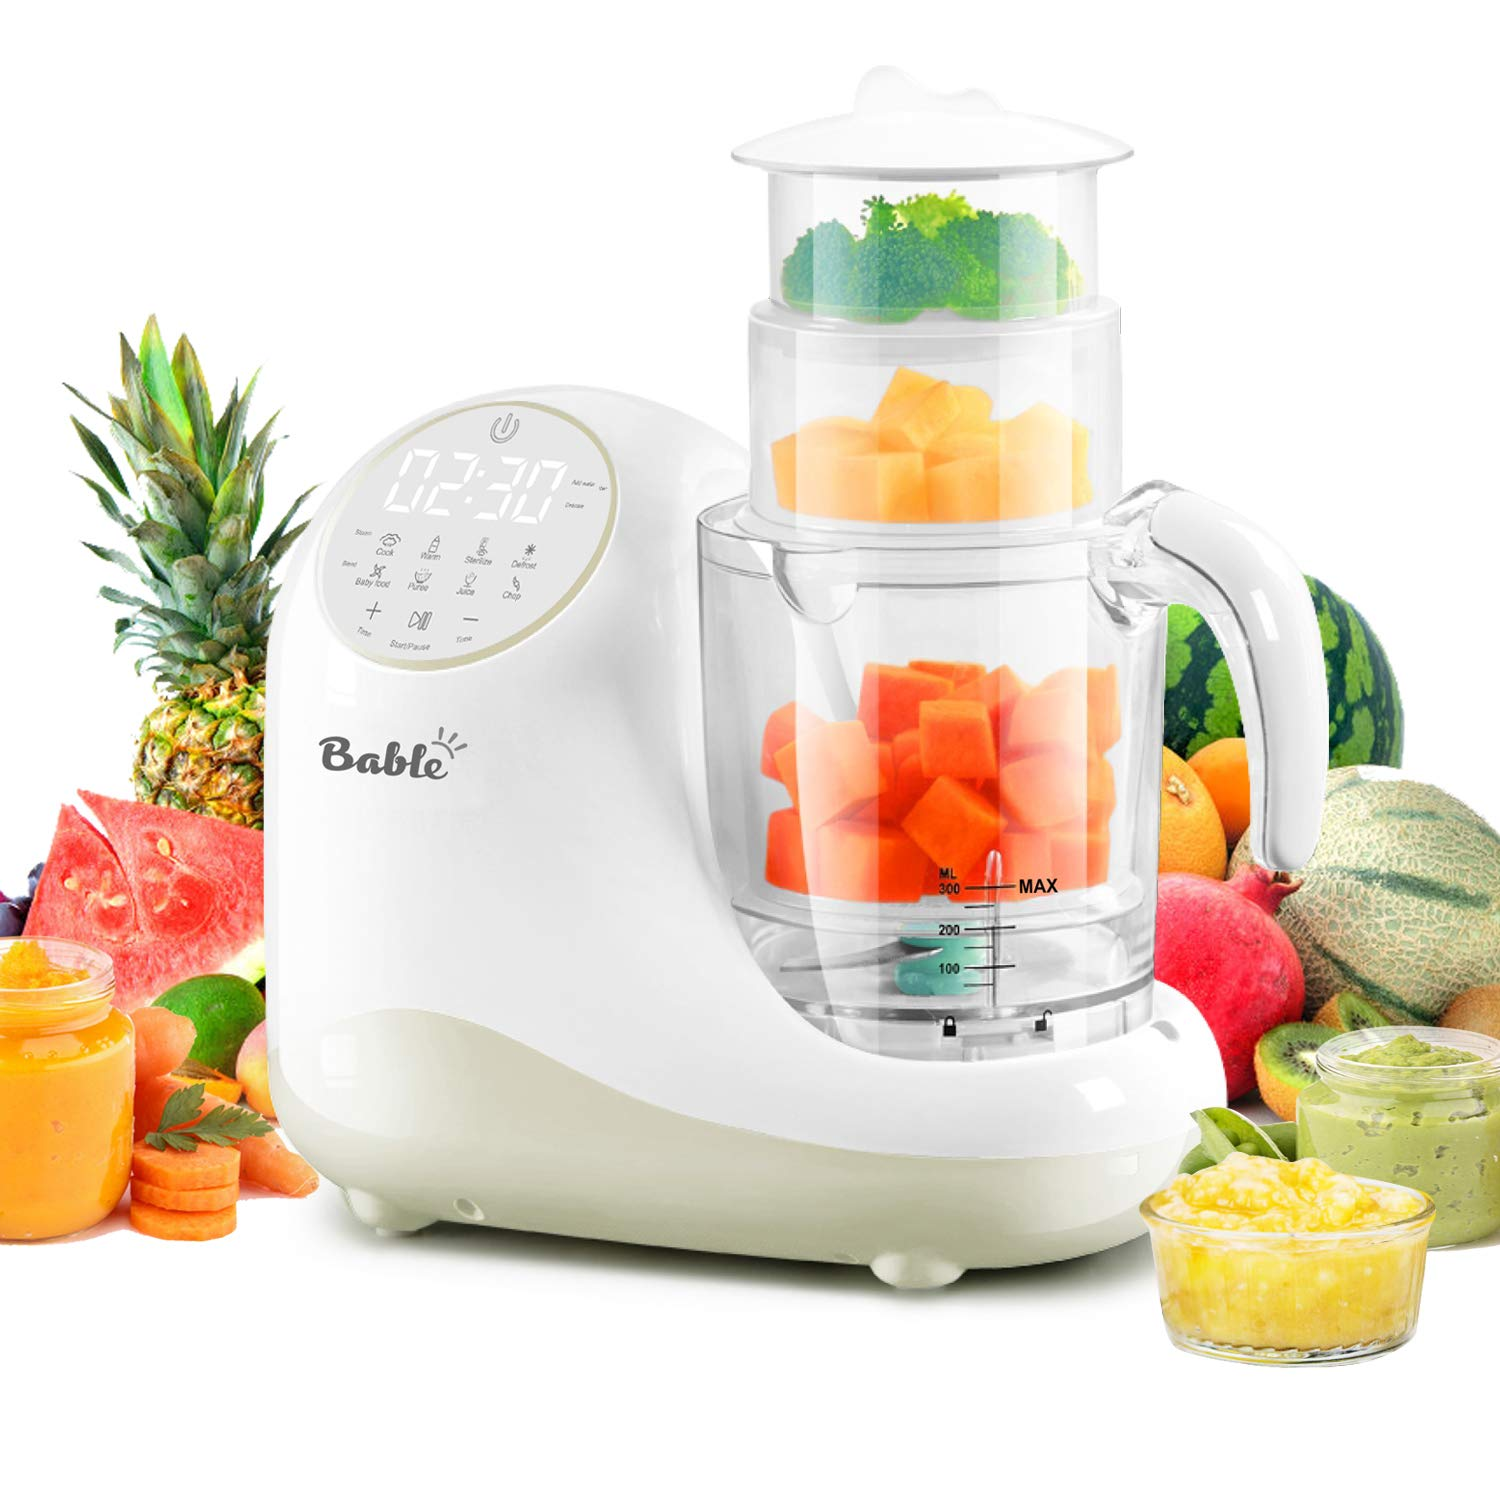 Baby Food Maker for Infants and Toddlers, Bable All-in-1 Food Processor Mills Machine with Steam, Blend, Chop, Sterilize, Warm Milk, Defrost, Grinder to Make Puree and Juice, Touch Control Panel, Auto by BABLE (Image #1)